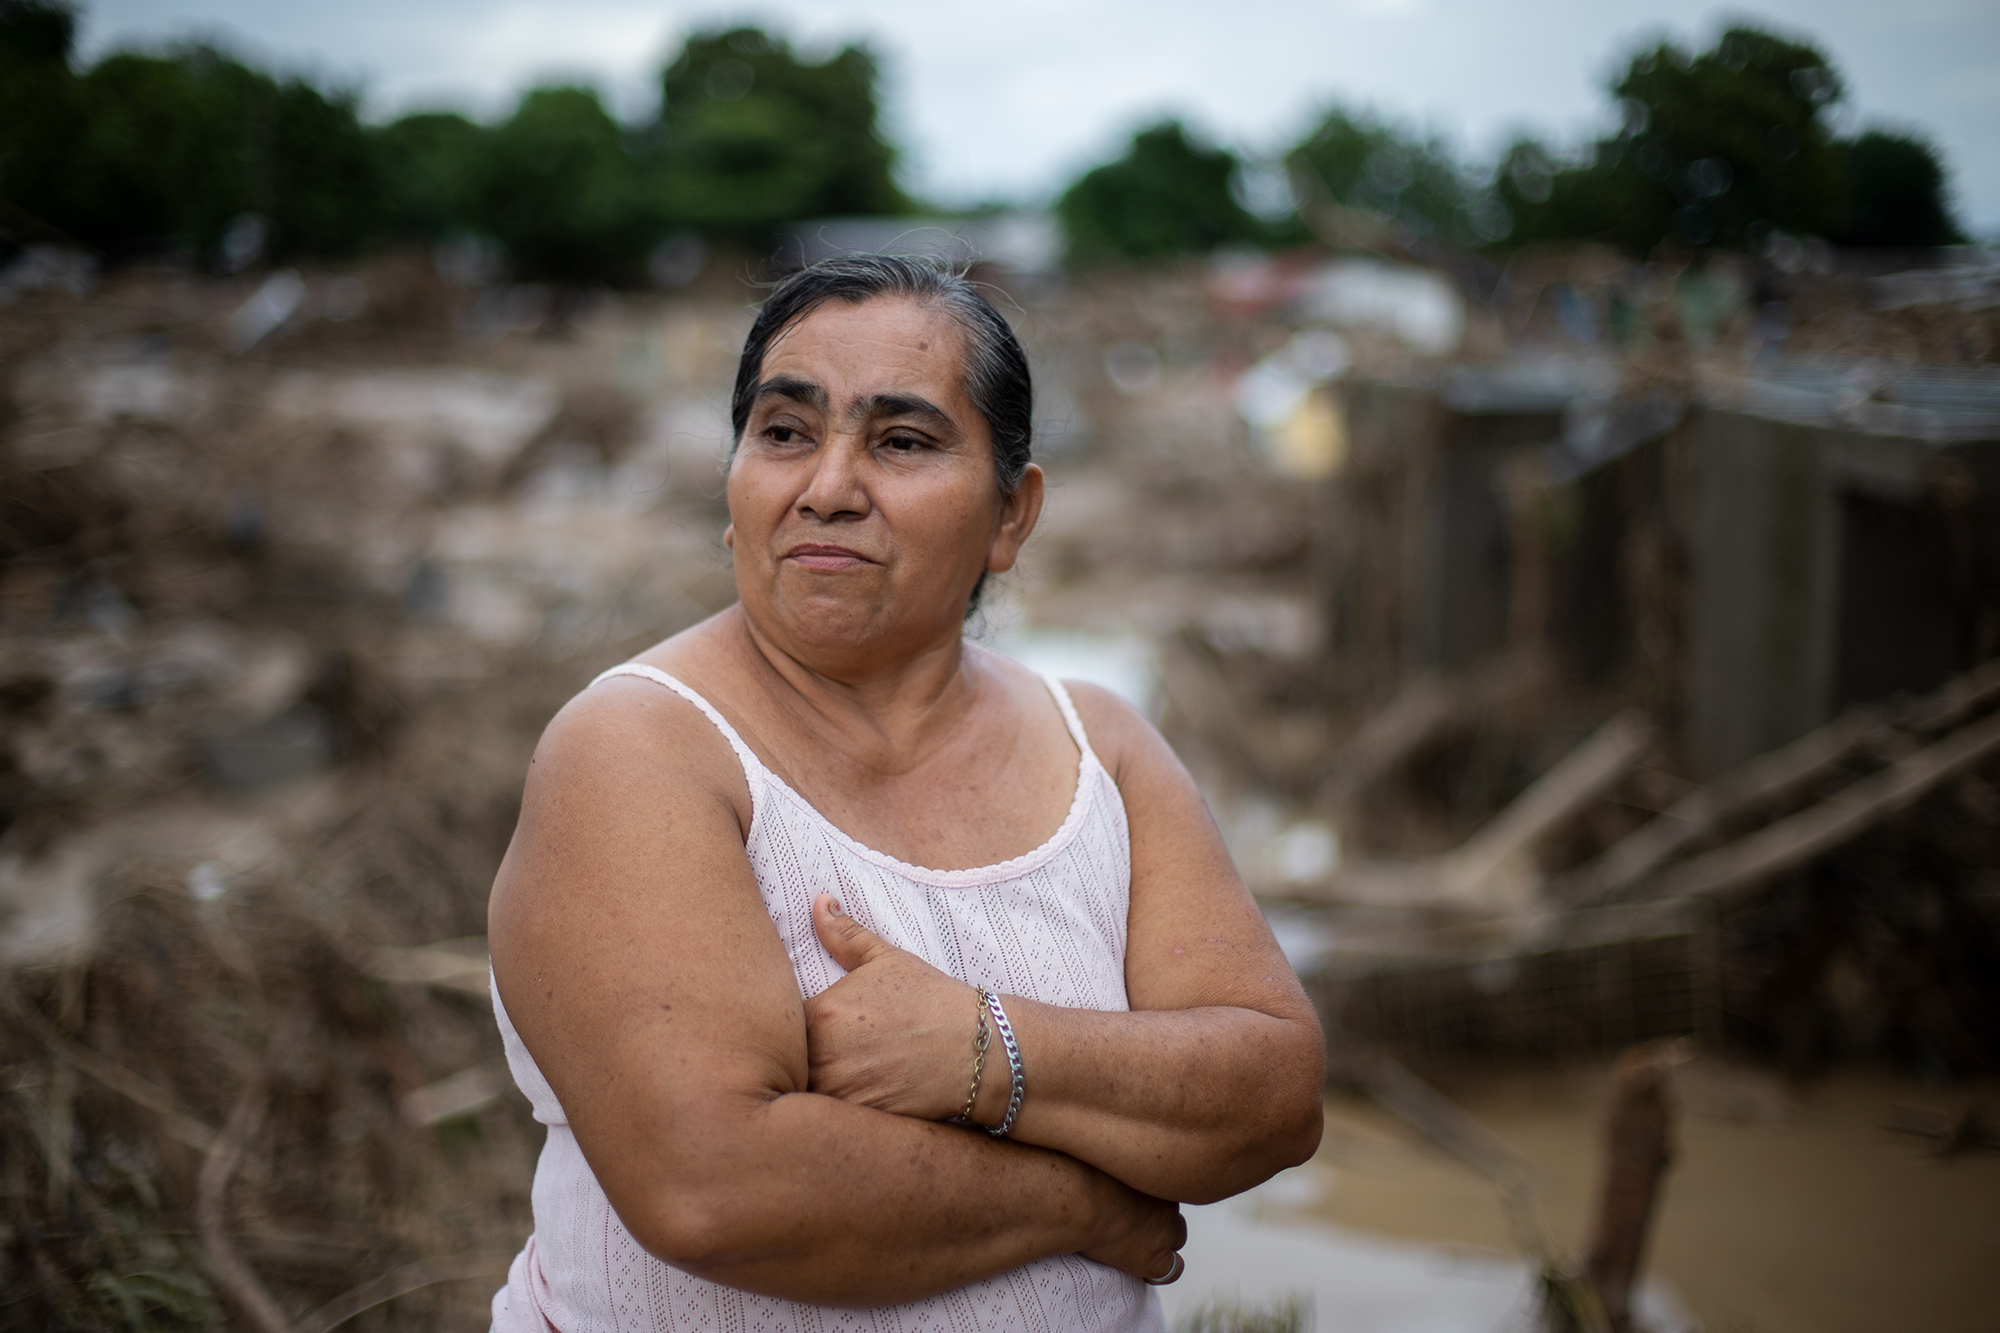 Elsa is 53 years old. The rain and the flooding of the Chamelecón river destroyed her home. Now, she and her family are taking refuge in the one shelter on the pier, where there are no bathrooms or food. There, her and forty other families wait for the conditions to improve so they can return to their homes. San Pedro Sula, Nov. 20, 2020. Photo: Martín Cálix.